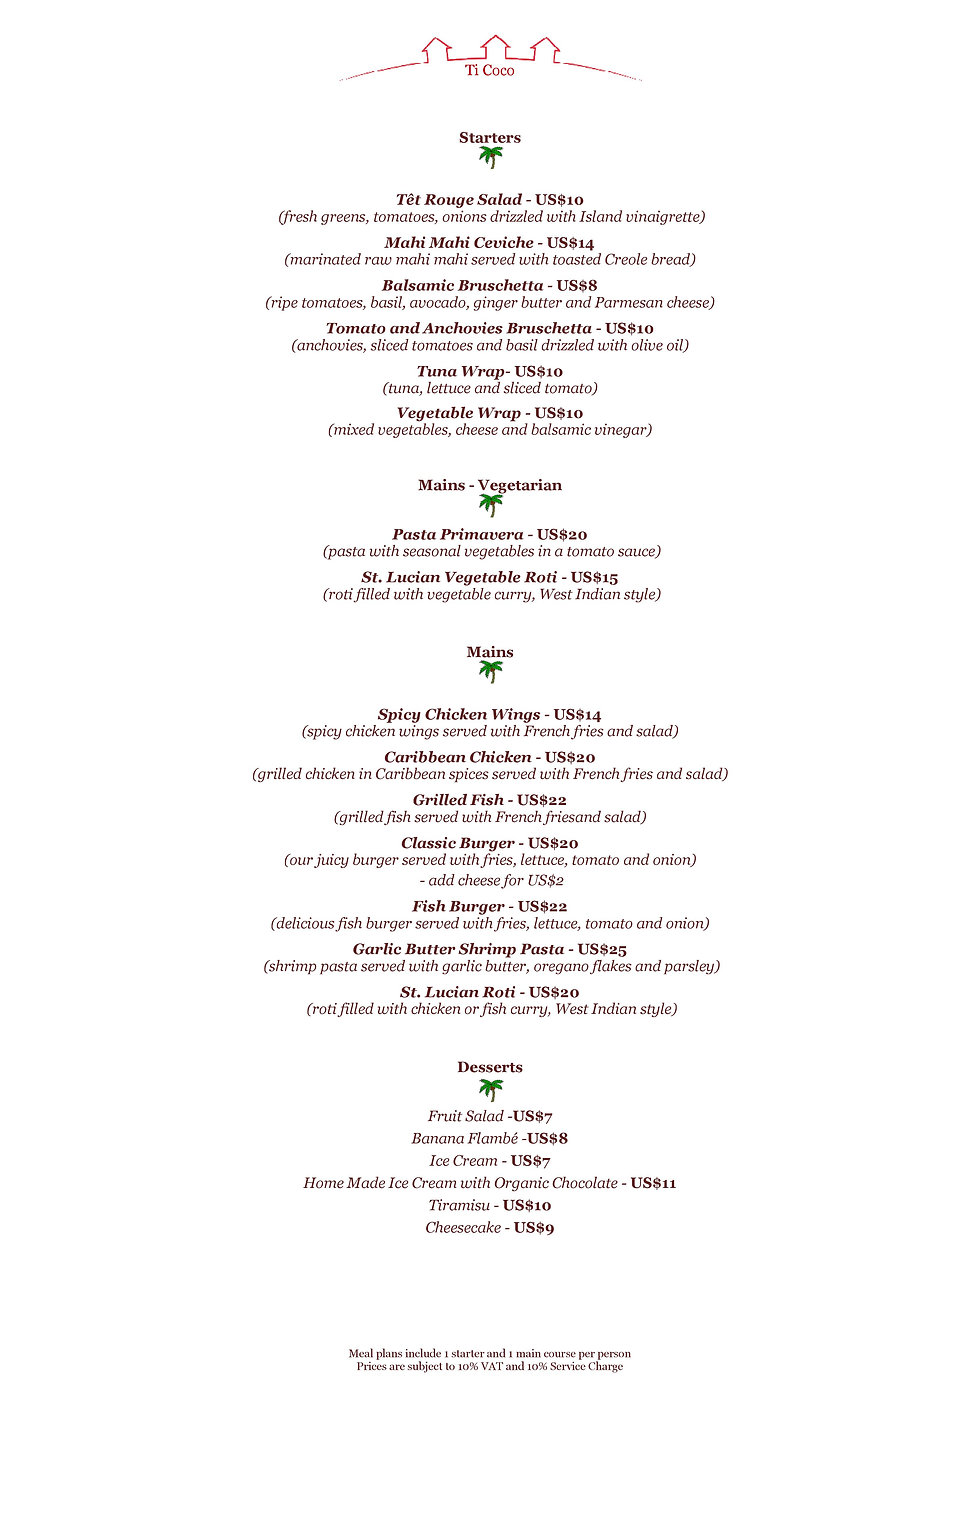 Ti Coco Lunch Menu at Tet Rouge Resort St. Lucia